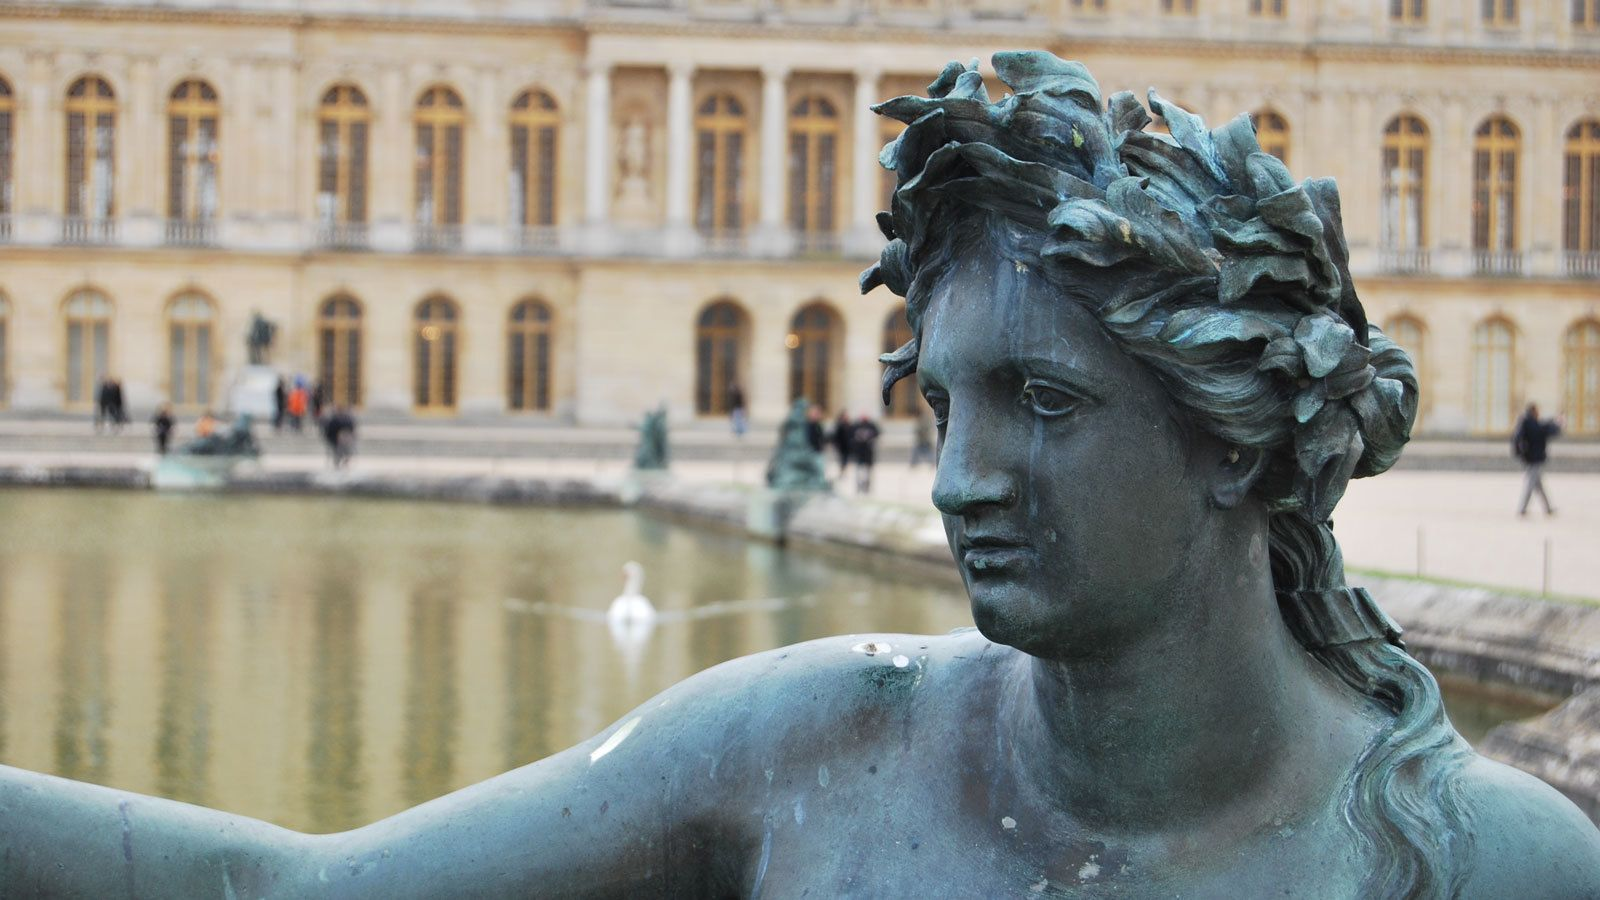 fountain sculpture outside the Versailles Palace in France